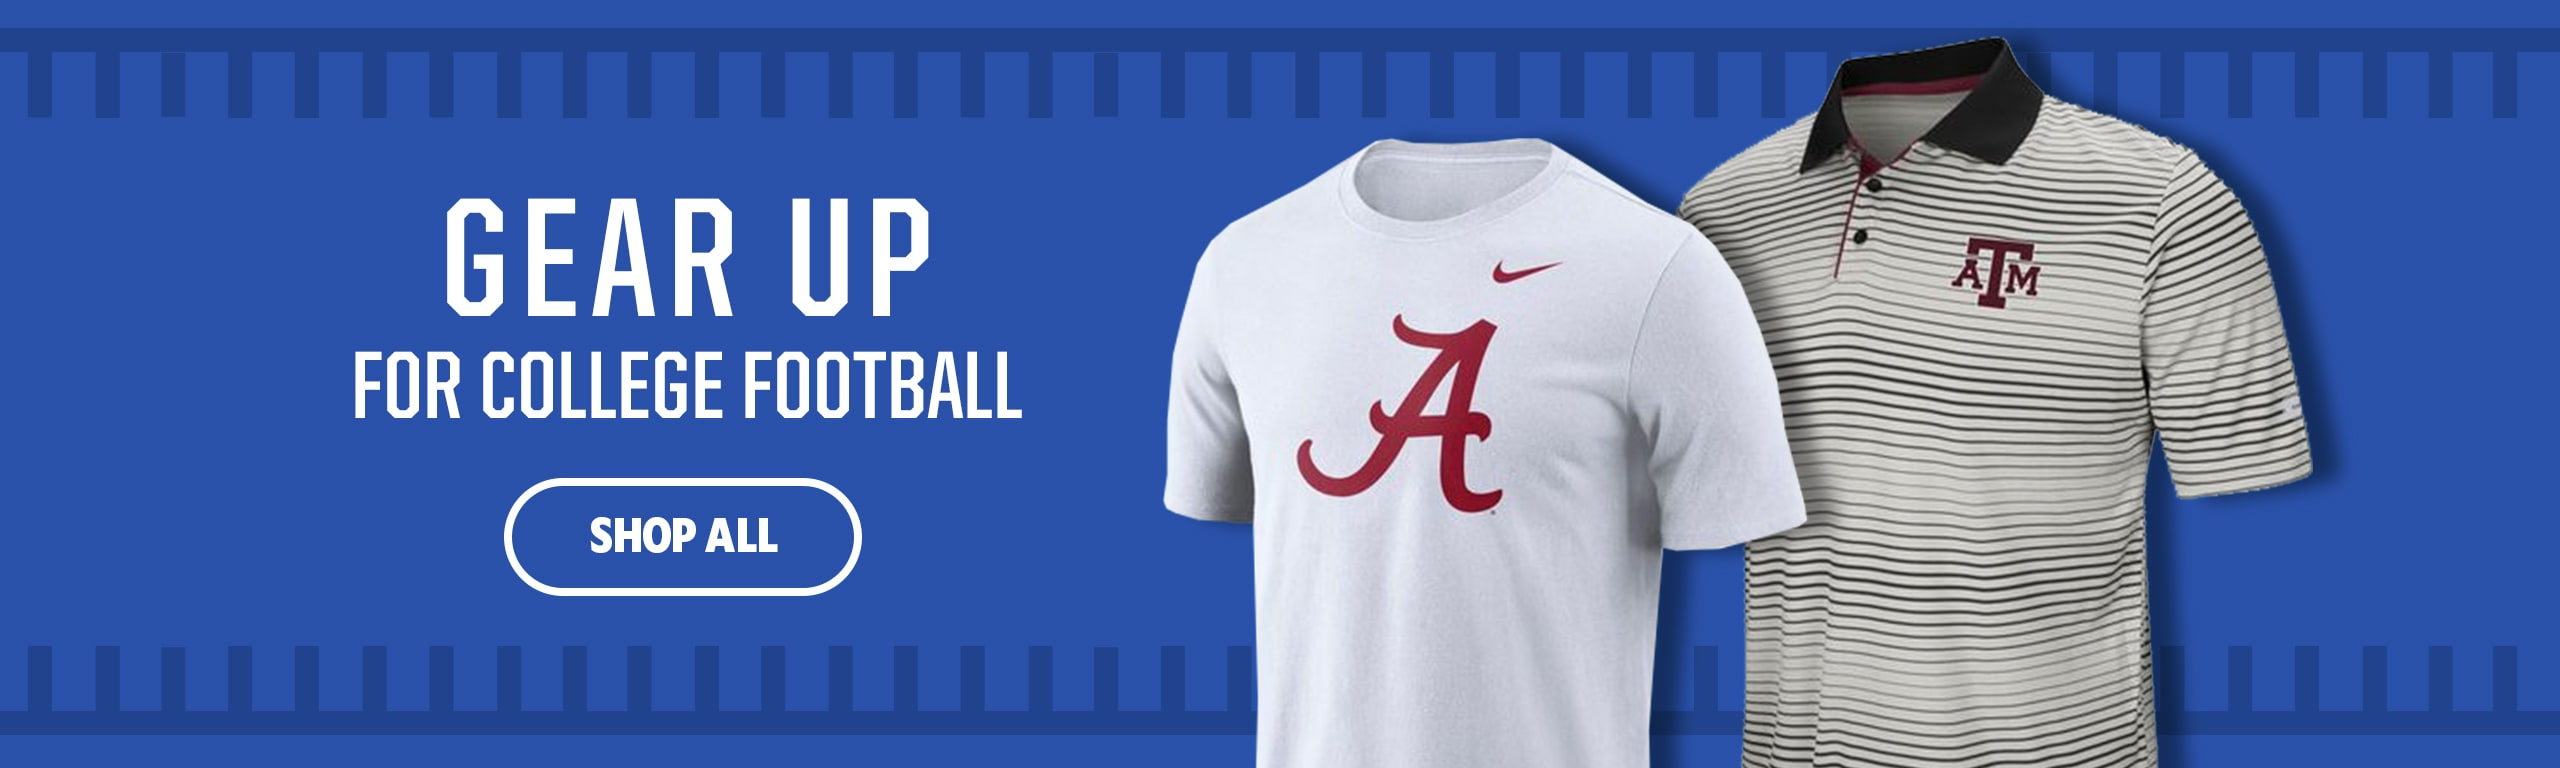 Gear Up for College Football